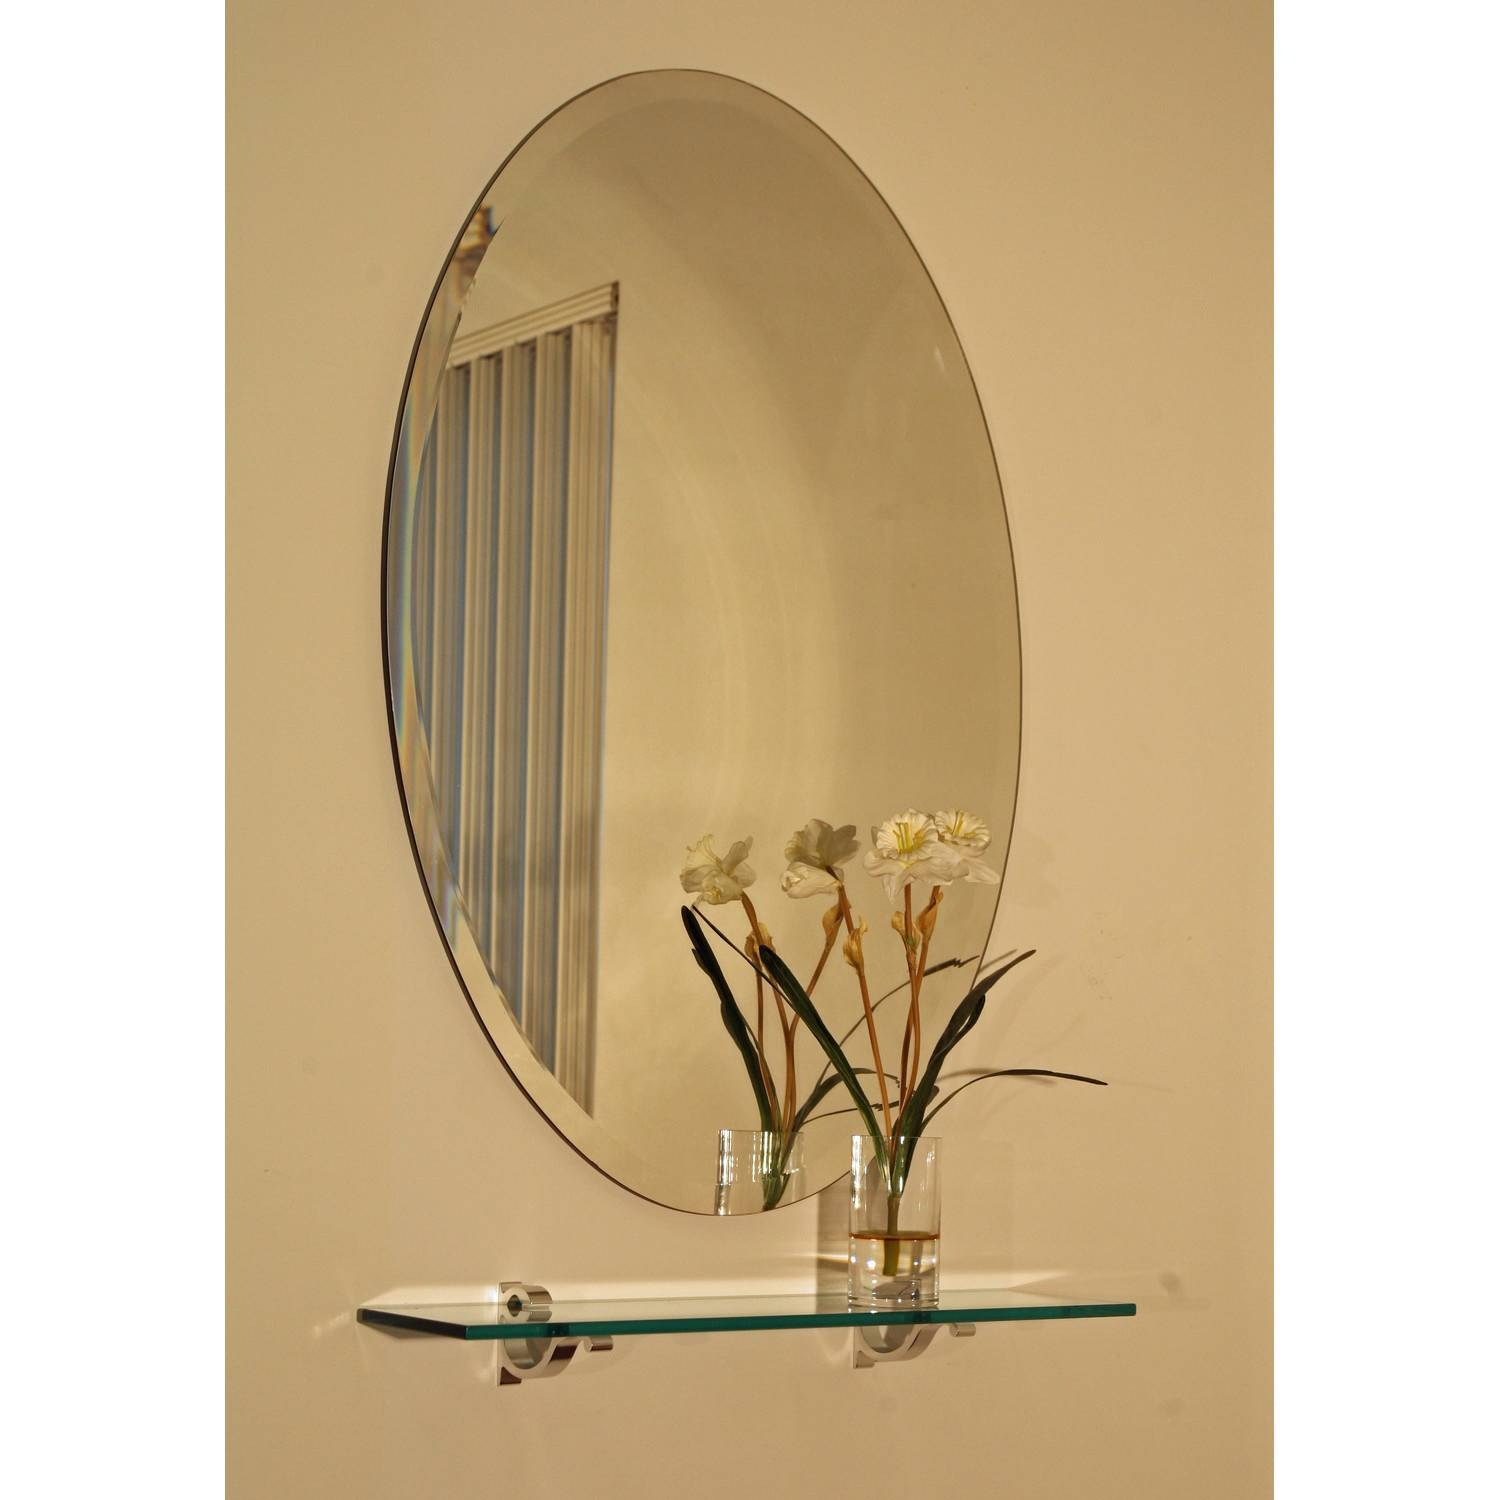 Regency 24 X 36 Oval Beveled Edge Mirror Spancraft Wall Mirror With Regard To Bevelled Oval Mirrors (View 9 of 15)